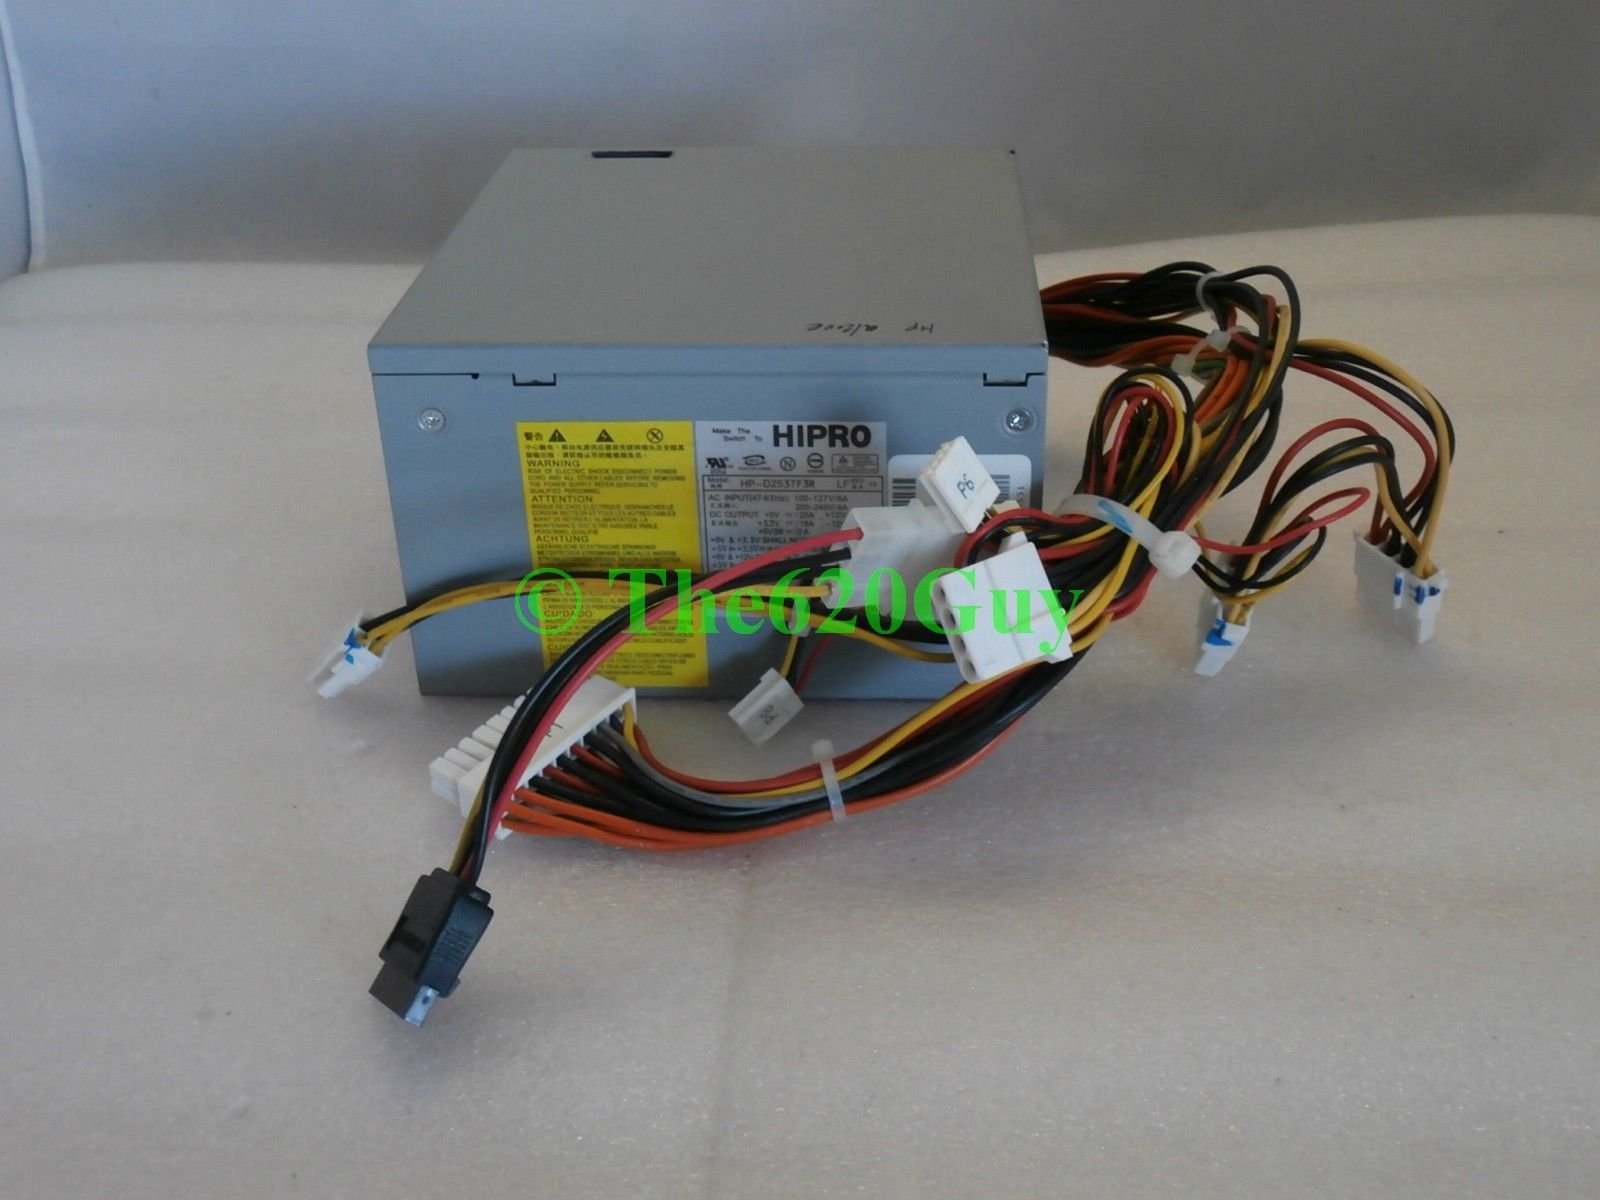 HP Compaq 250W ATX 20 Pin 4 Pin Power Supply 5188 2622 HIPRO HP D2537F3R LF a600 360851427793 2 hp pavilion power supply schematic opensearch hp-d2537f3r wiring diagram at soozxer.org